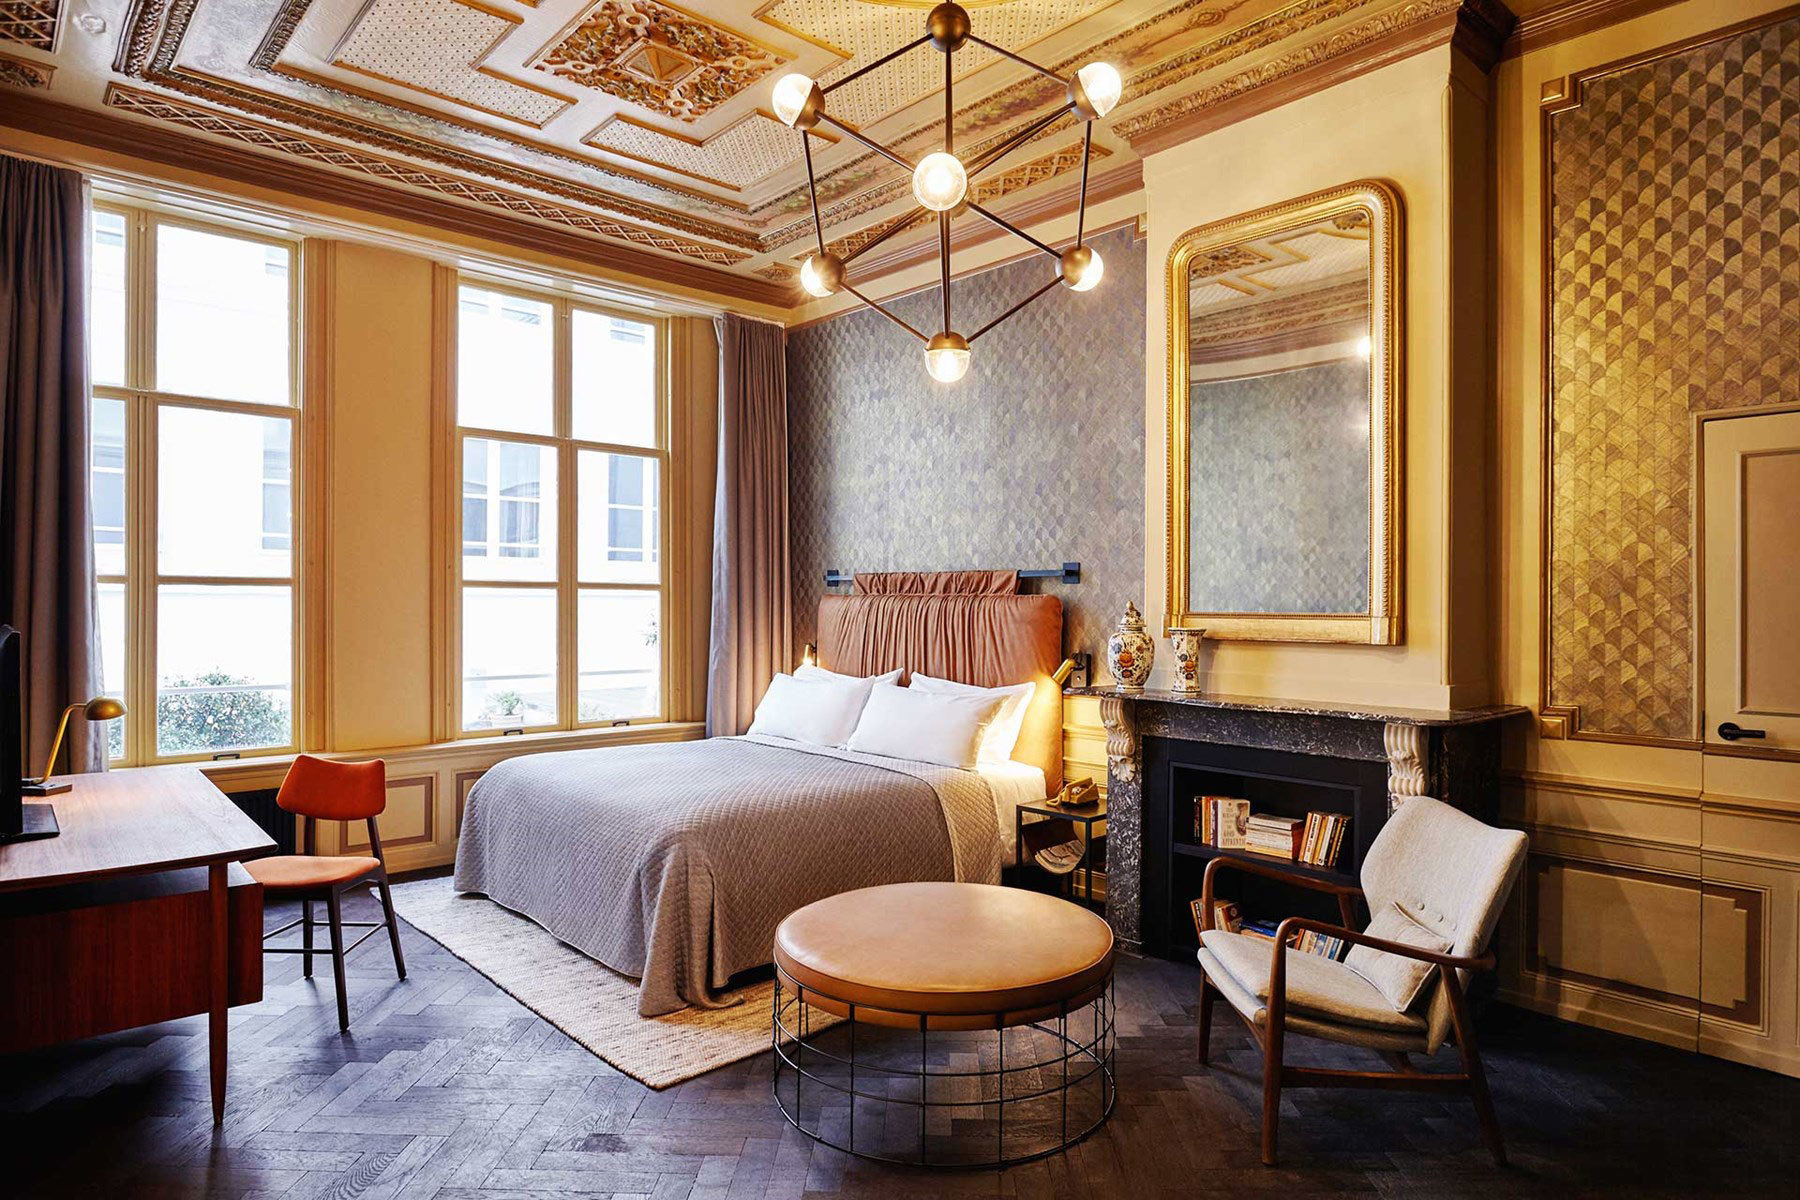 Amsterdam Hotels Style + Design The Netherlands Travel Shop window indoor floor room property living room estate home Living Suite ceiling hardwood interior design cottage real estate farmhouse mansion wood Villa wood flooring Bedroom furniture area